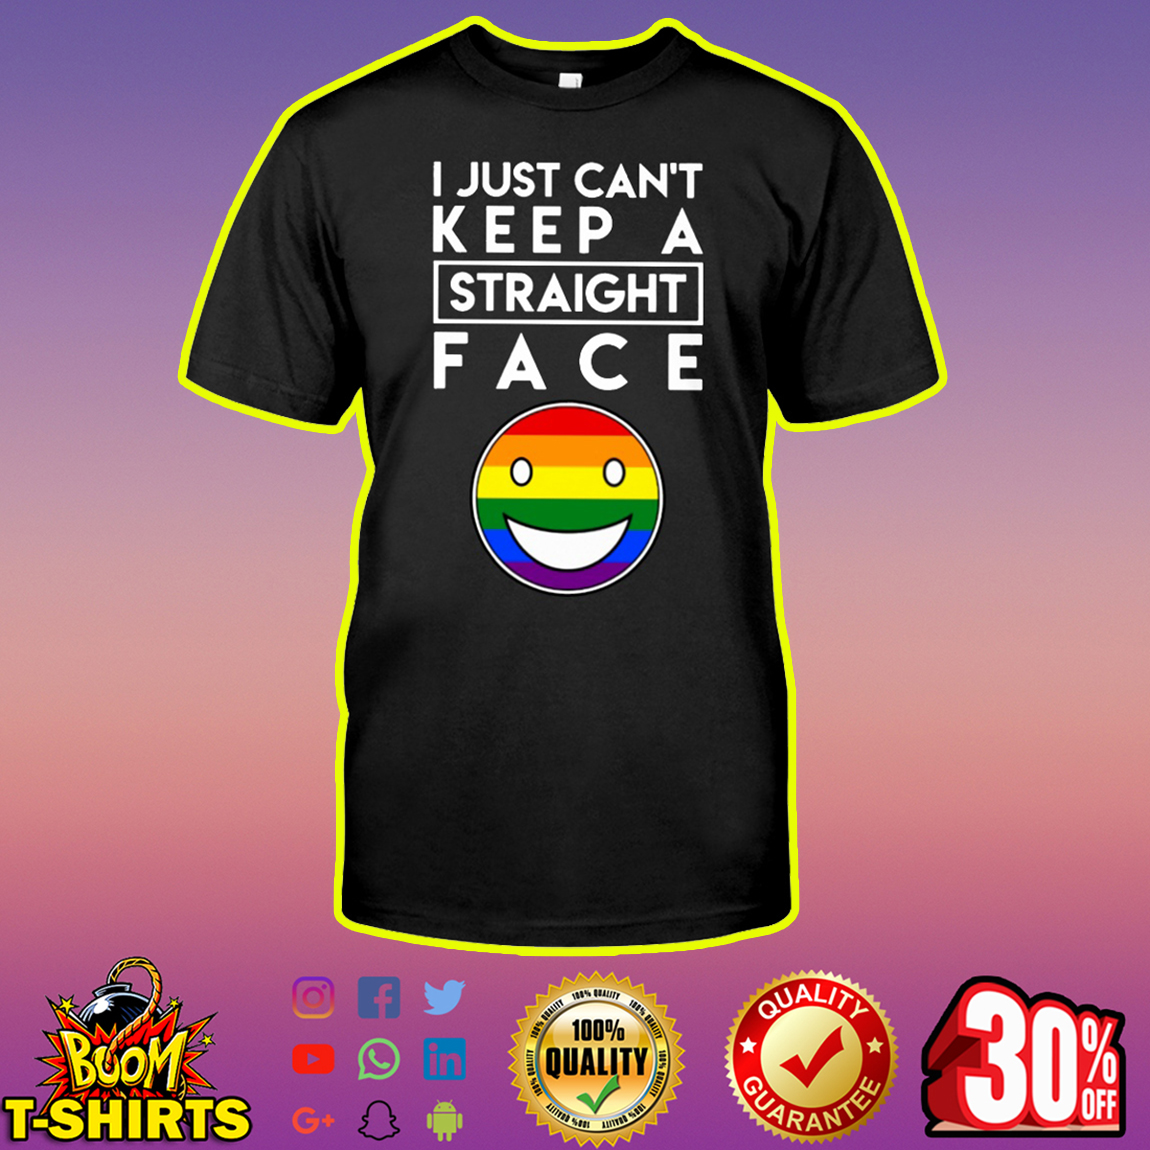 LGBT Pride I Just Can't Keep a Straight Face shirt